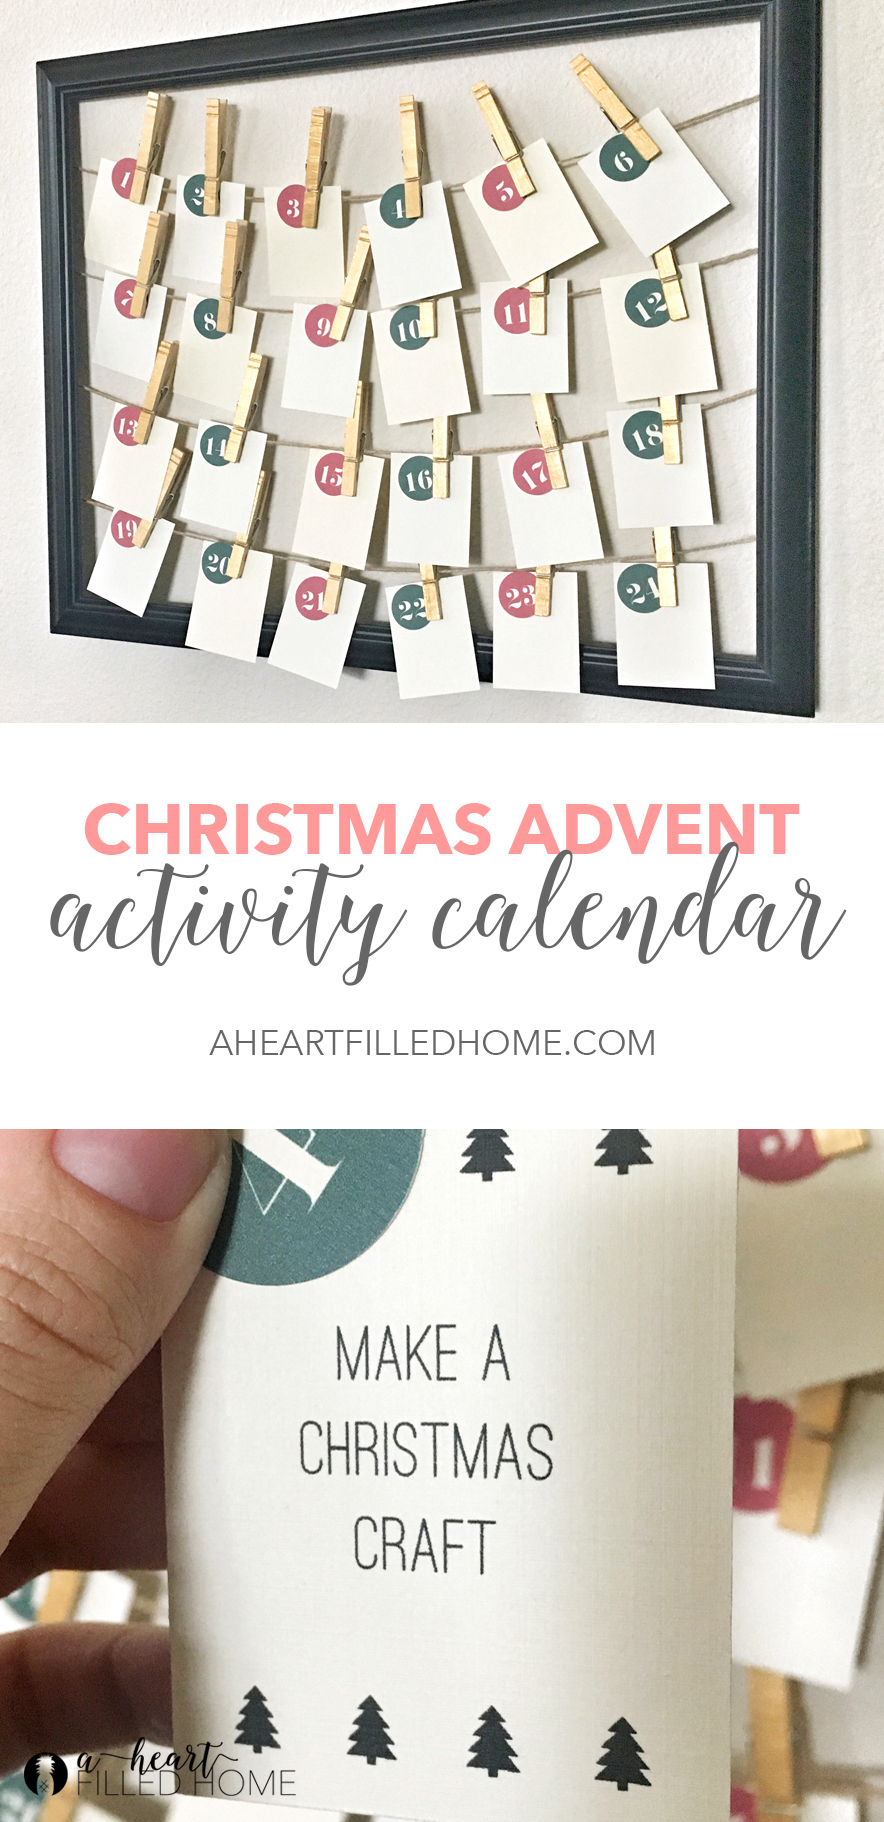 Printable Christmas Advent Activity Calendar from aheartfilledhome.com. Visit to download your free printable calendar!